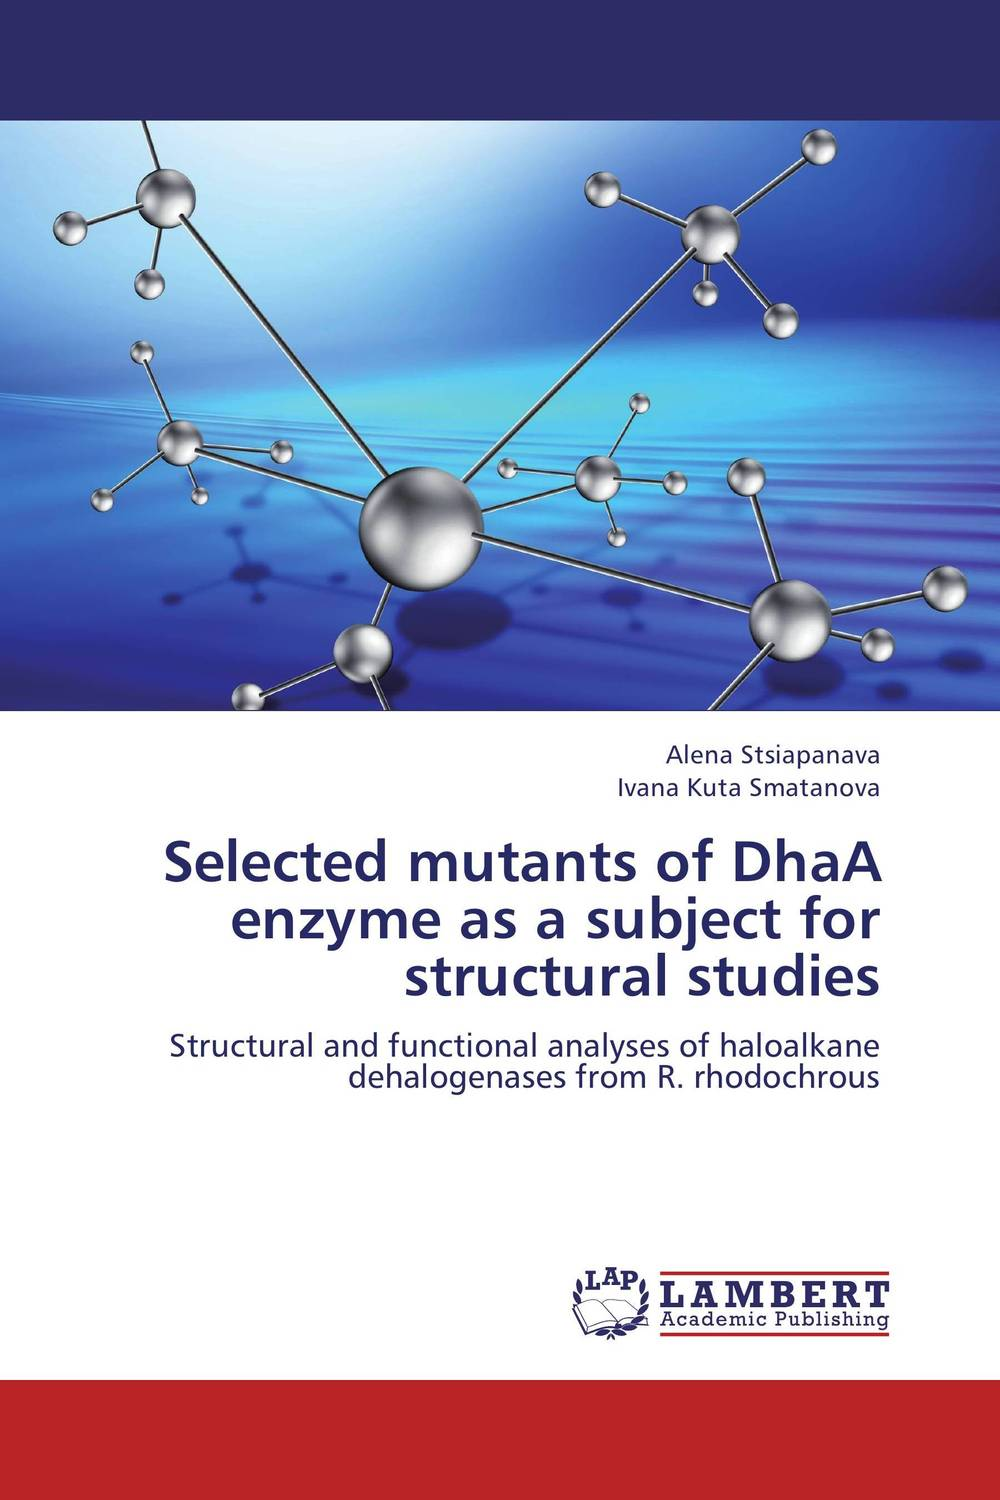 Selected mutants of DhaA enzyme as a subject for structural studies using enzyme from novozyme